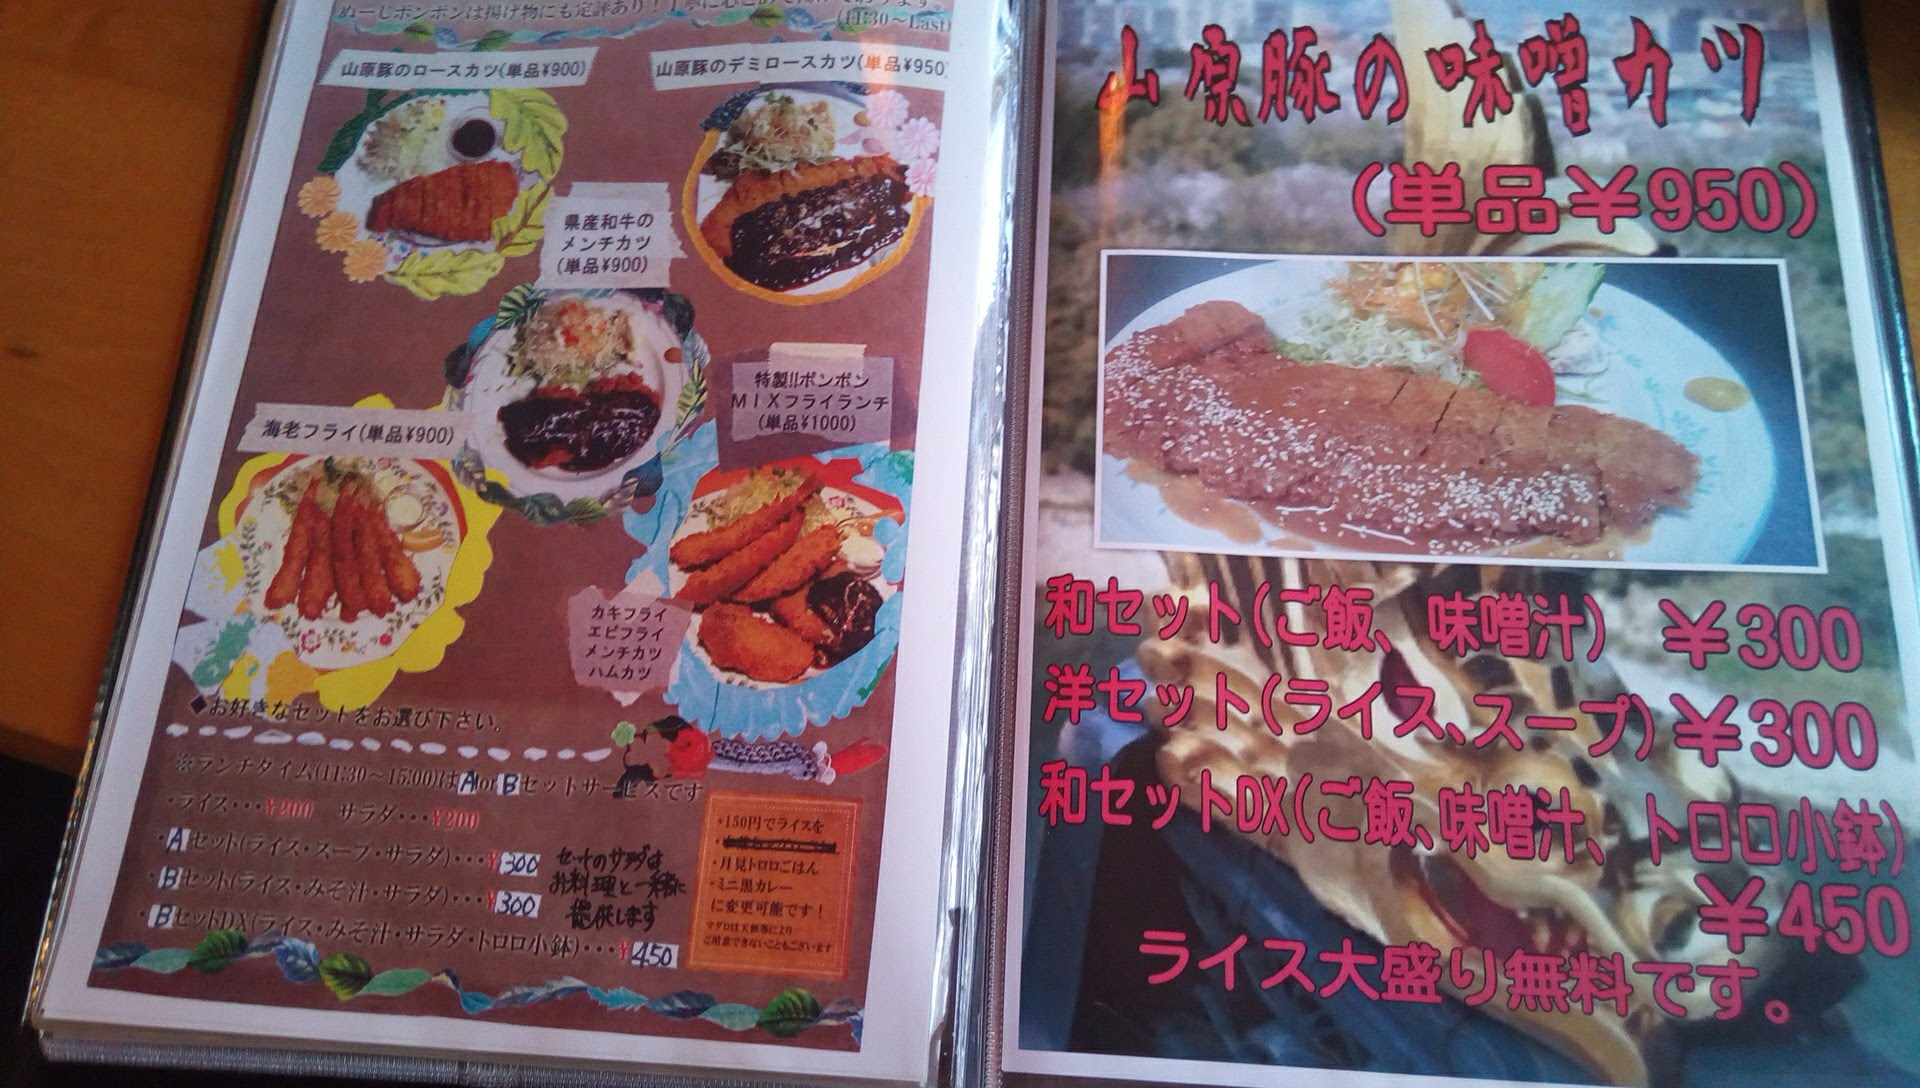 the menu of Nuji bonbon Z 5